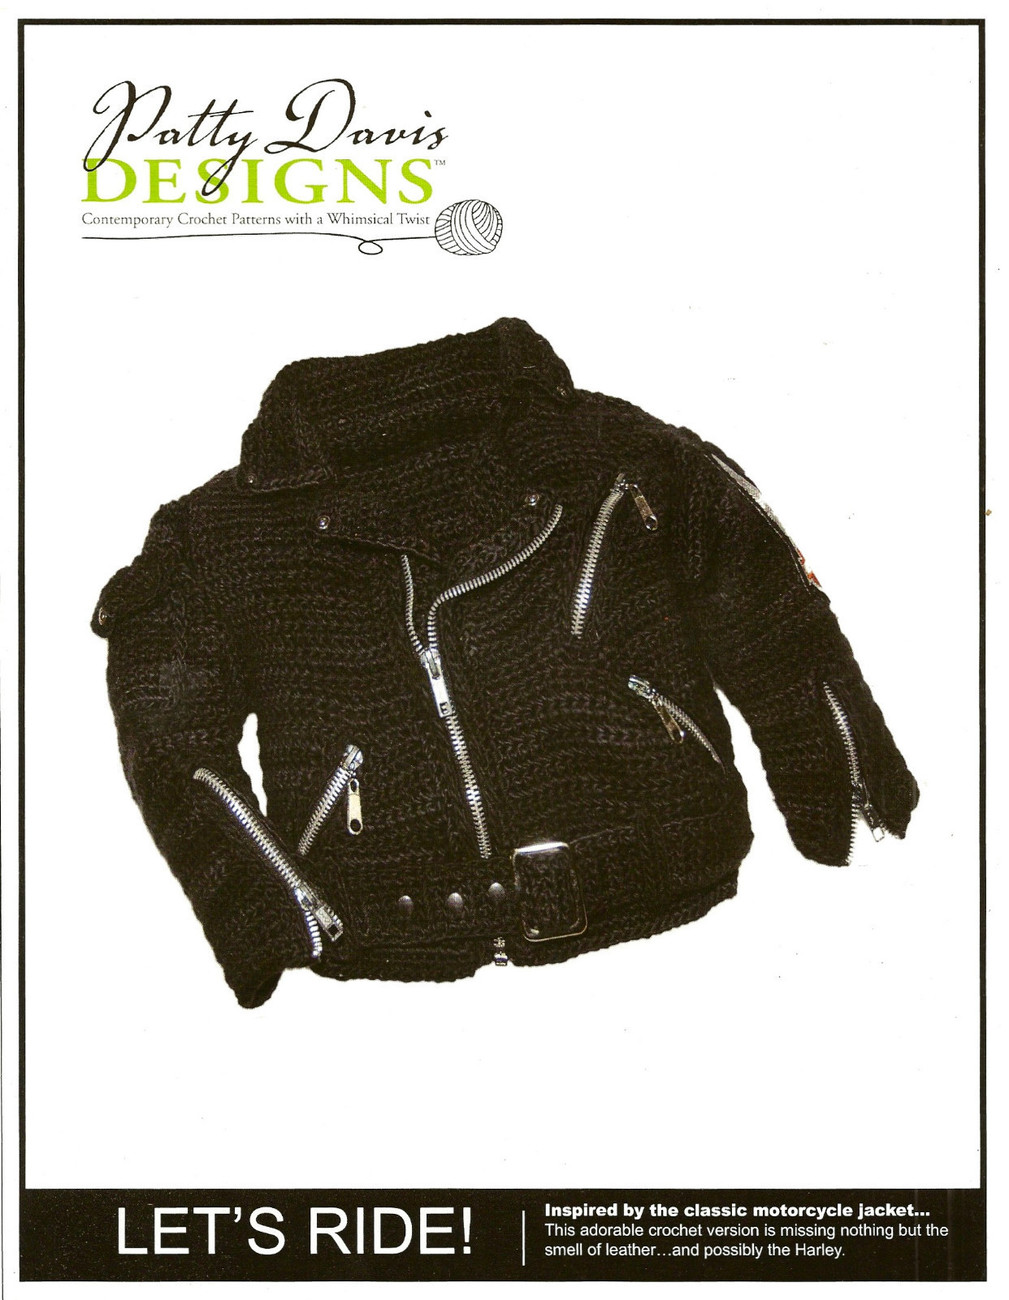 Crochet Pattern - New - Let's Ride - Motorcycle Jacket - Patty Davis Designs